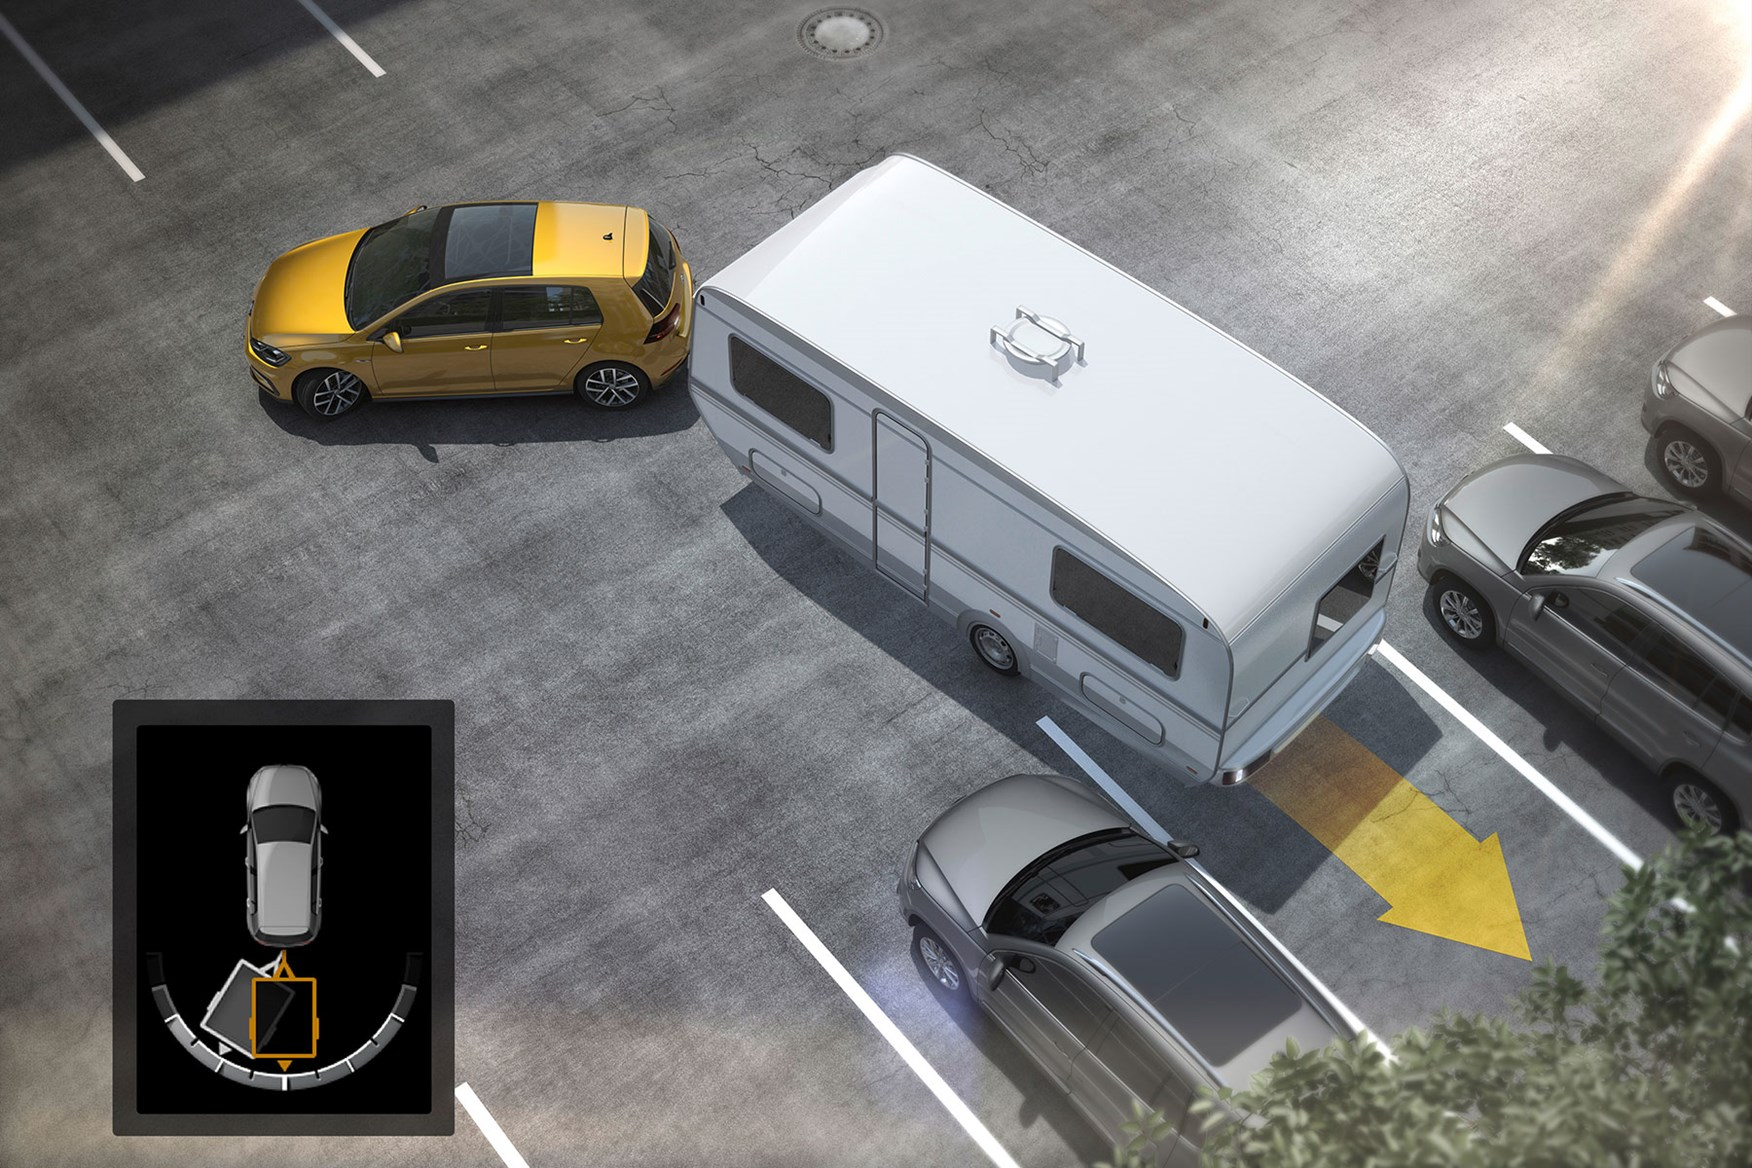 Modern trailer assist systems aid parking with caravans